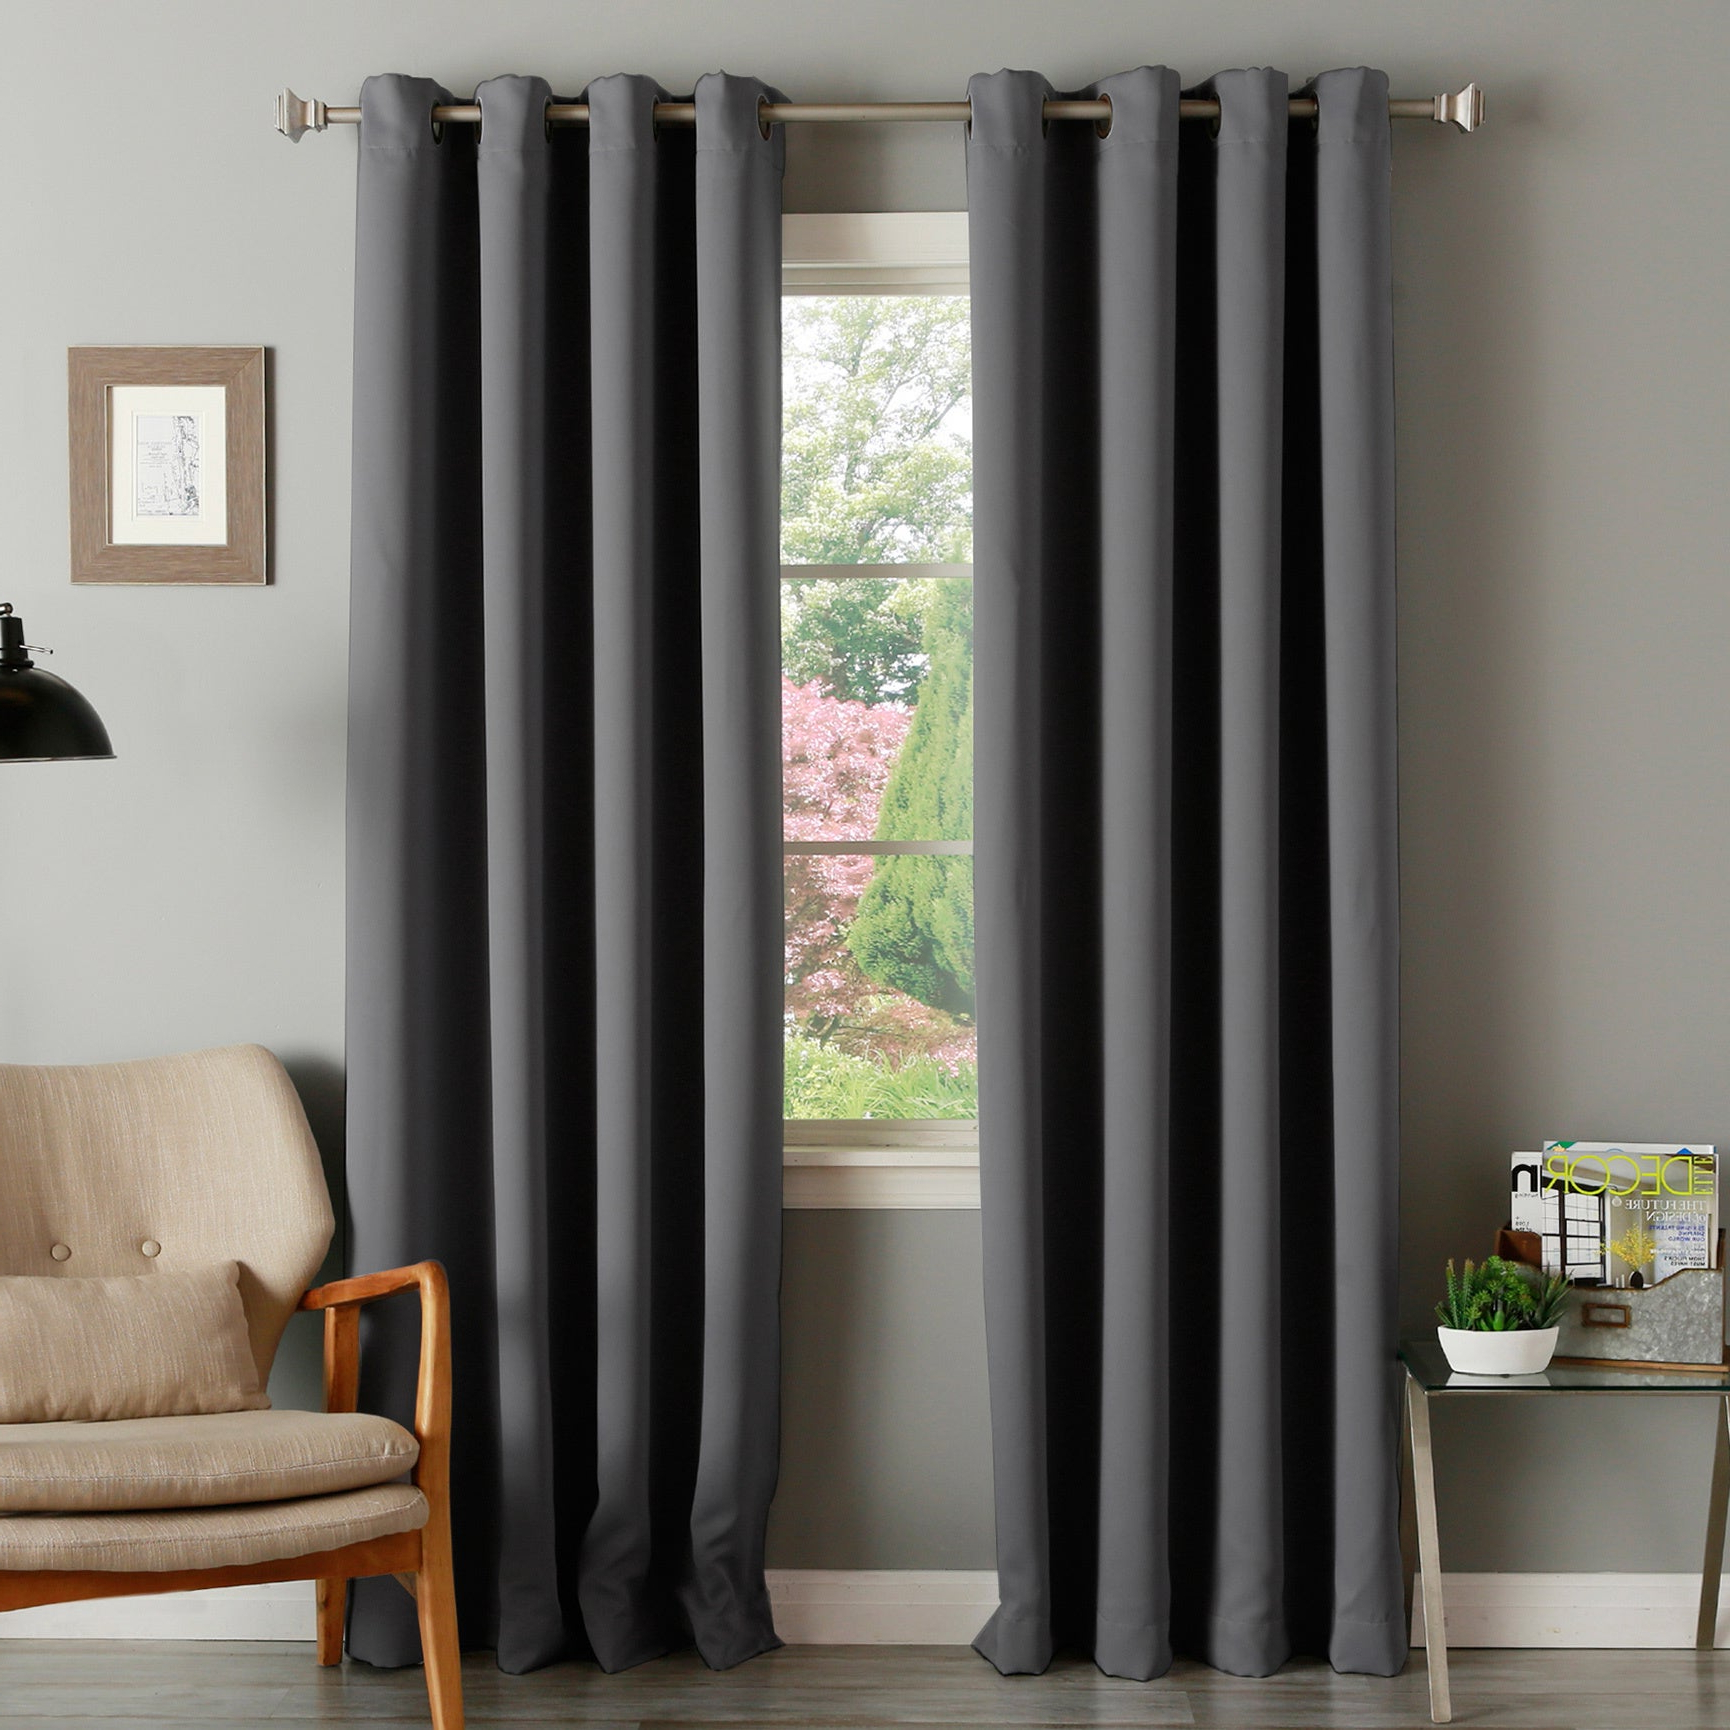 Well Liked Aurora Home Thermal Insulated Blackout Grommet Top 84 Inch Curtain Panel  Pair – 52 X 84 With Regard To Solid Insulated Thermal Blackout Curtain Panel Pairs (View 19 of 20)